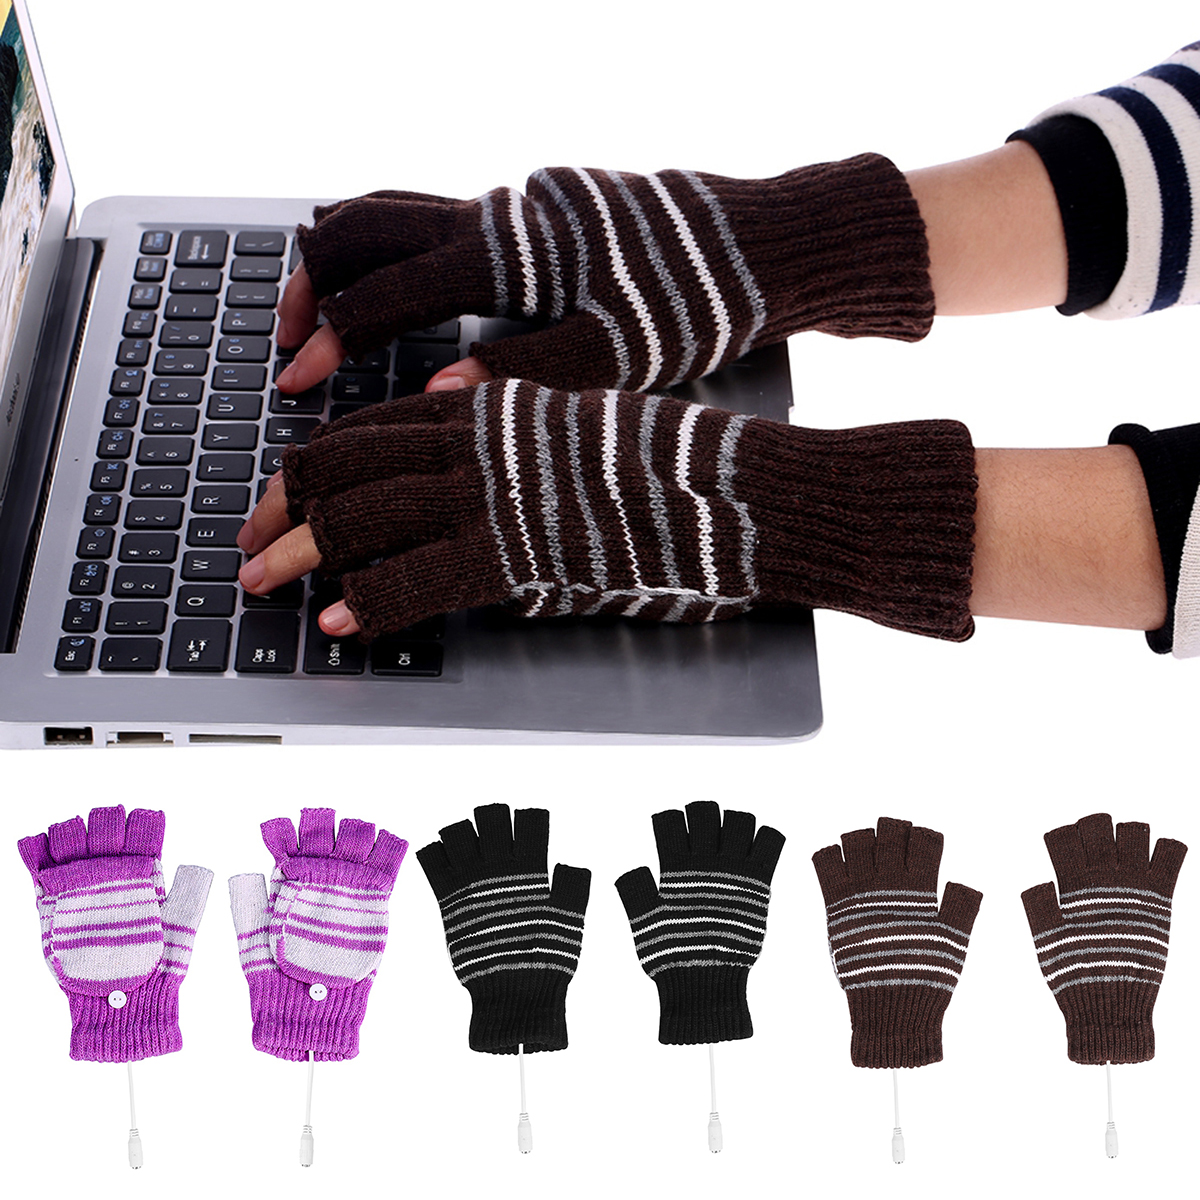 Gumstyle Group FFF Winter Fingerless Gloves Cosplay Arm Warmers